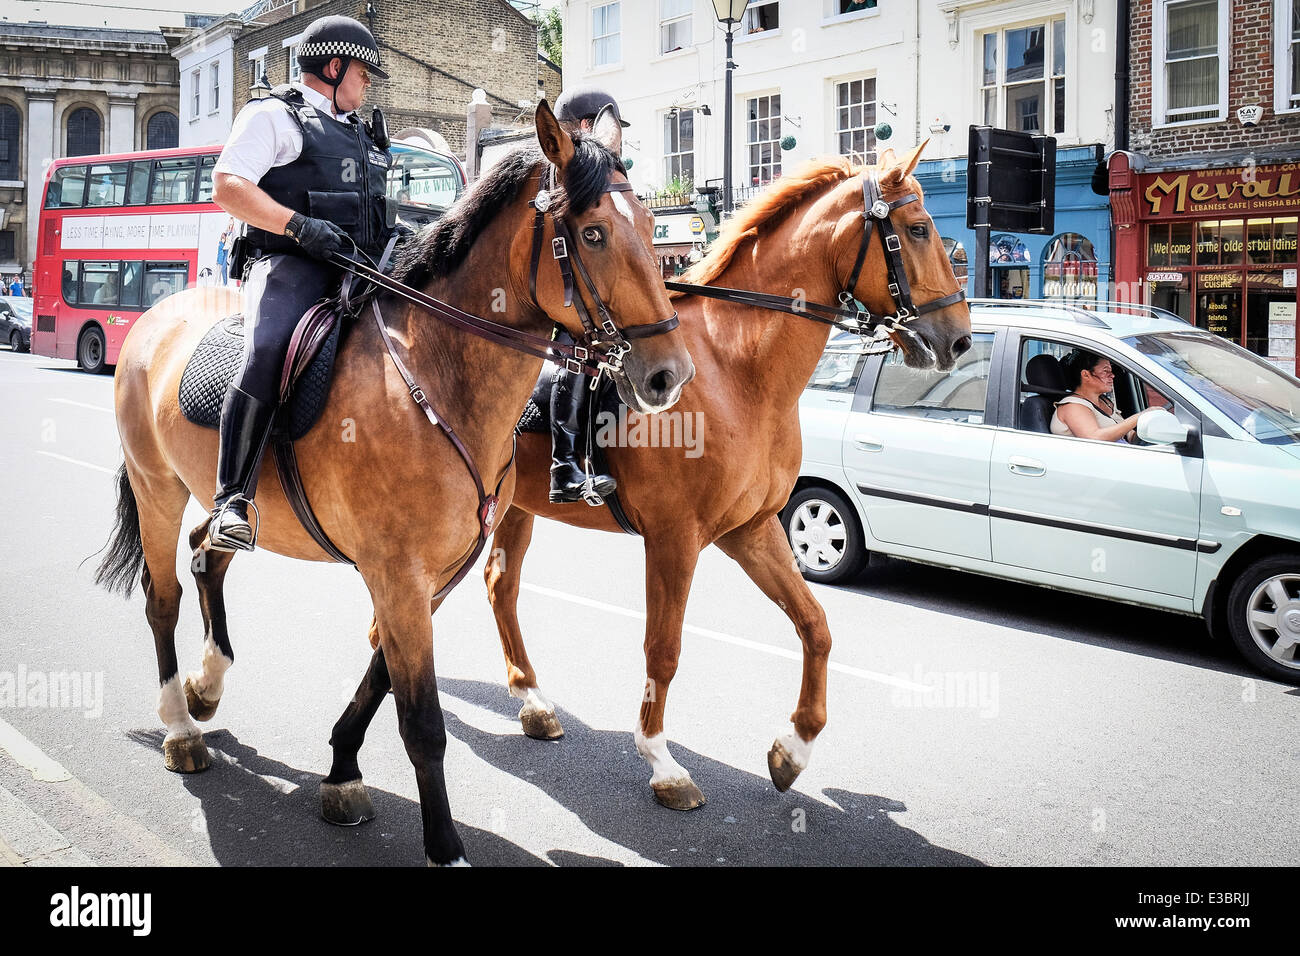 Two mounted Metropolitan Police Officers patrolling the street of Greenwich. - Stock Image